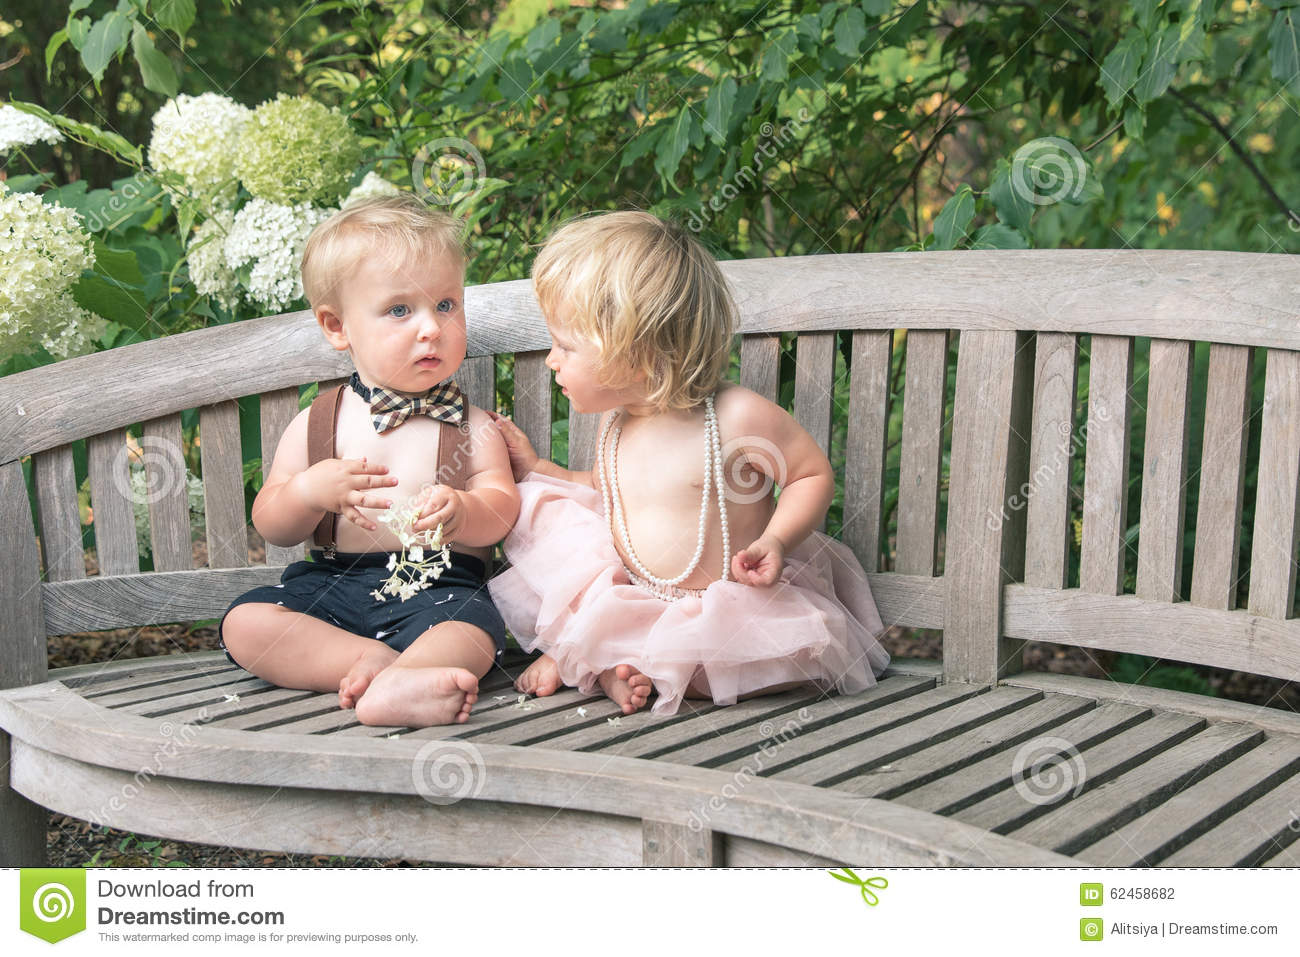 baby boy and girl in formal dress sitting on wooden bench in a